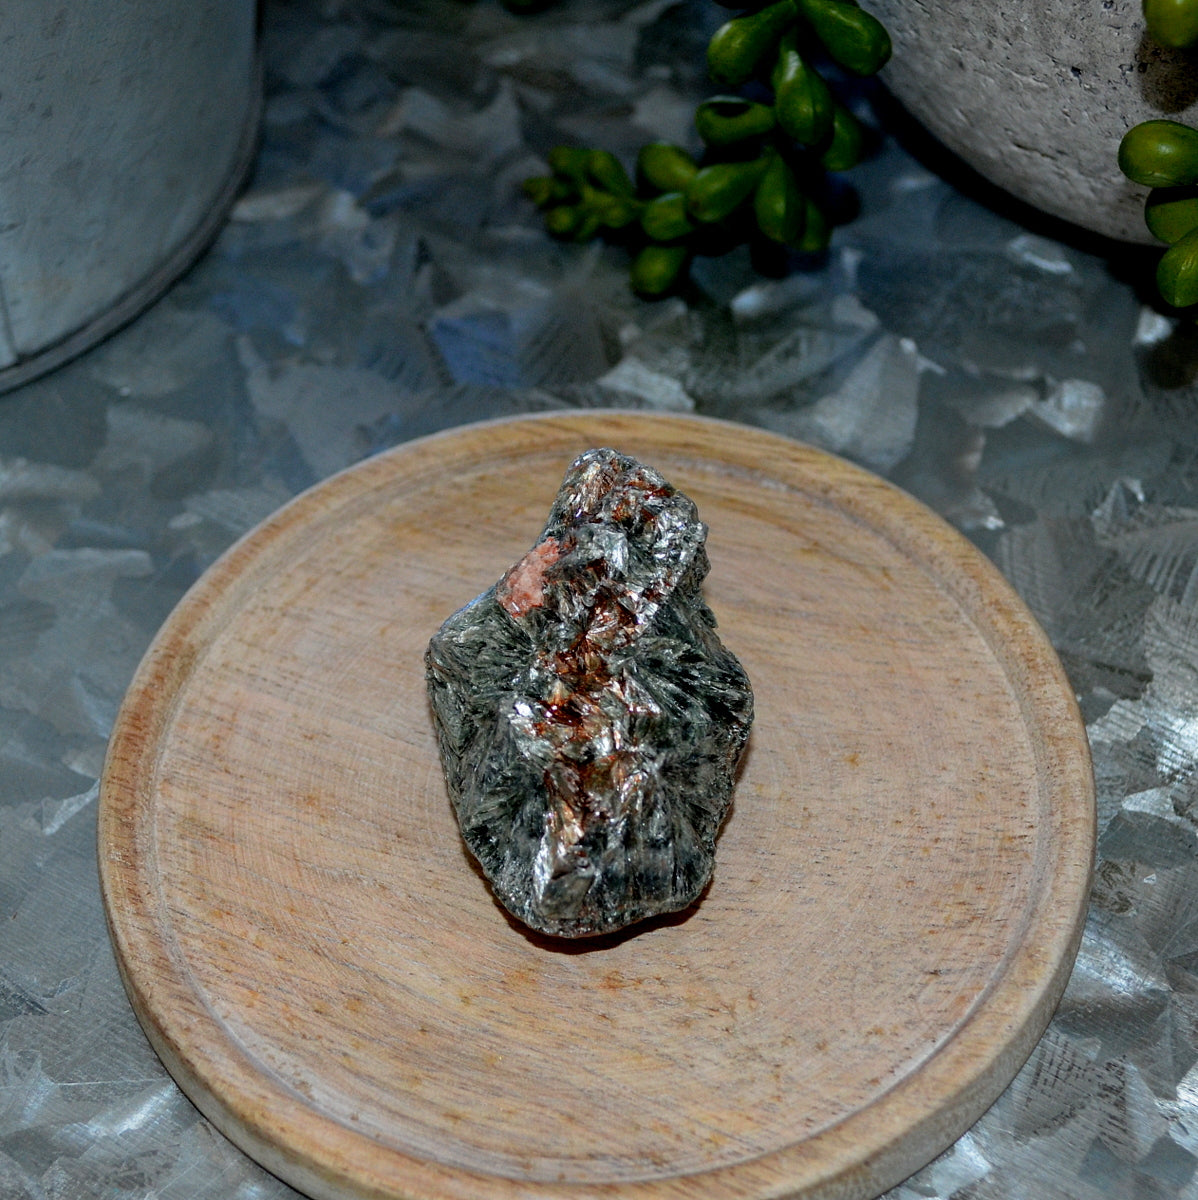 Seraphinite Rough Natural Raw Specimen at Illiom Crystals - Afterpay Available